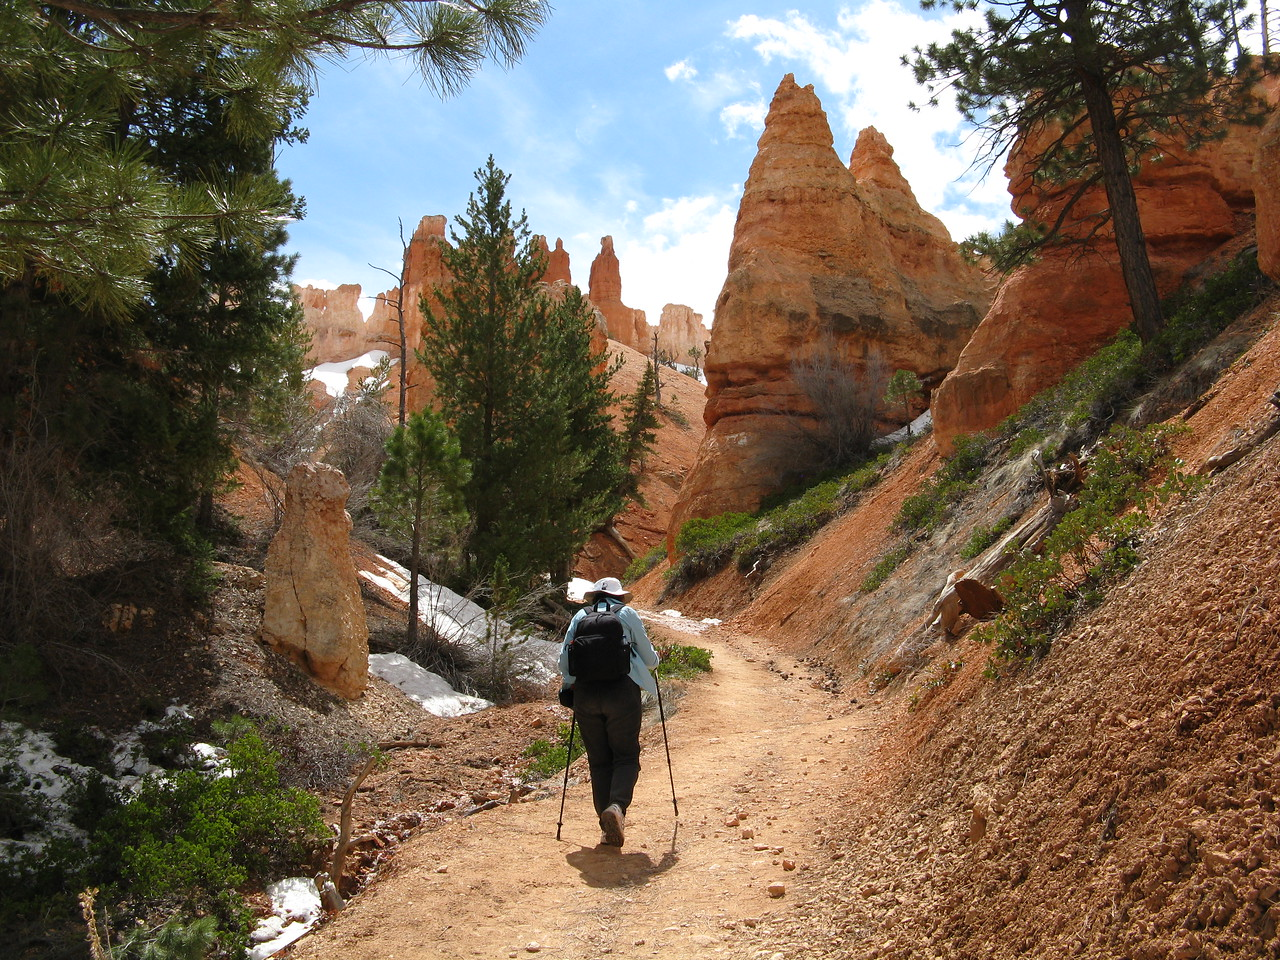 The trail took us up and down through the hoodoos.